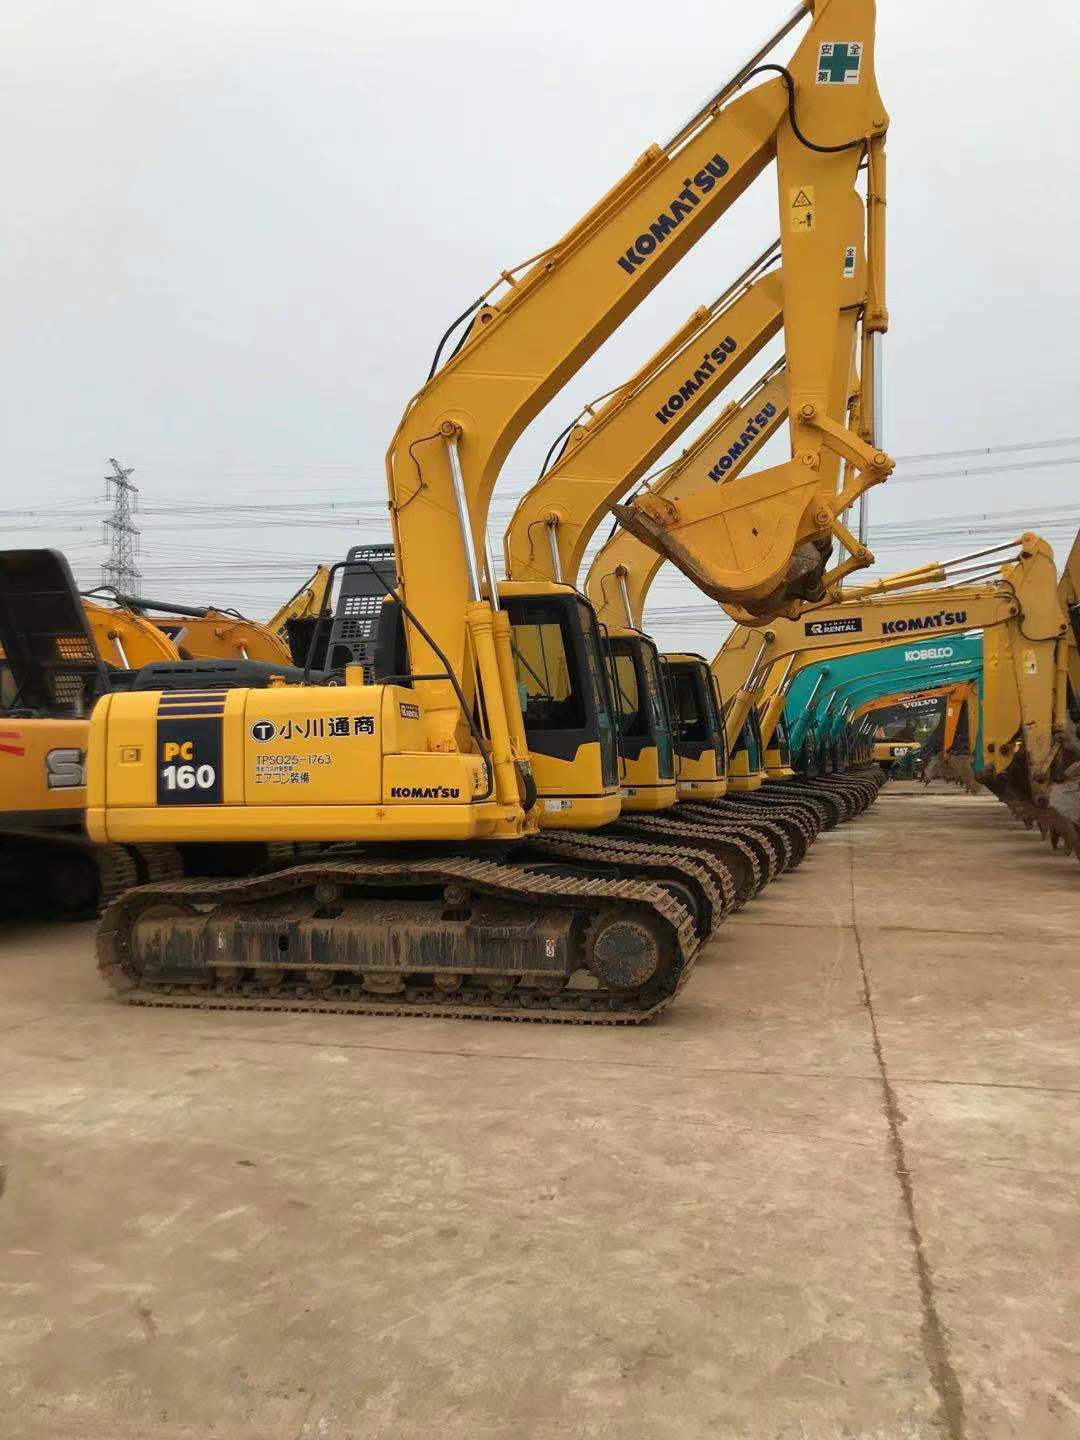 Used Komatsu PC160 Excavator for sale !!!